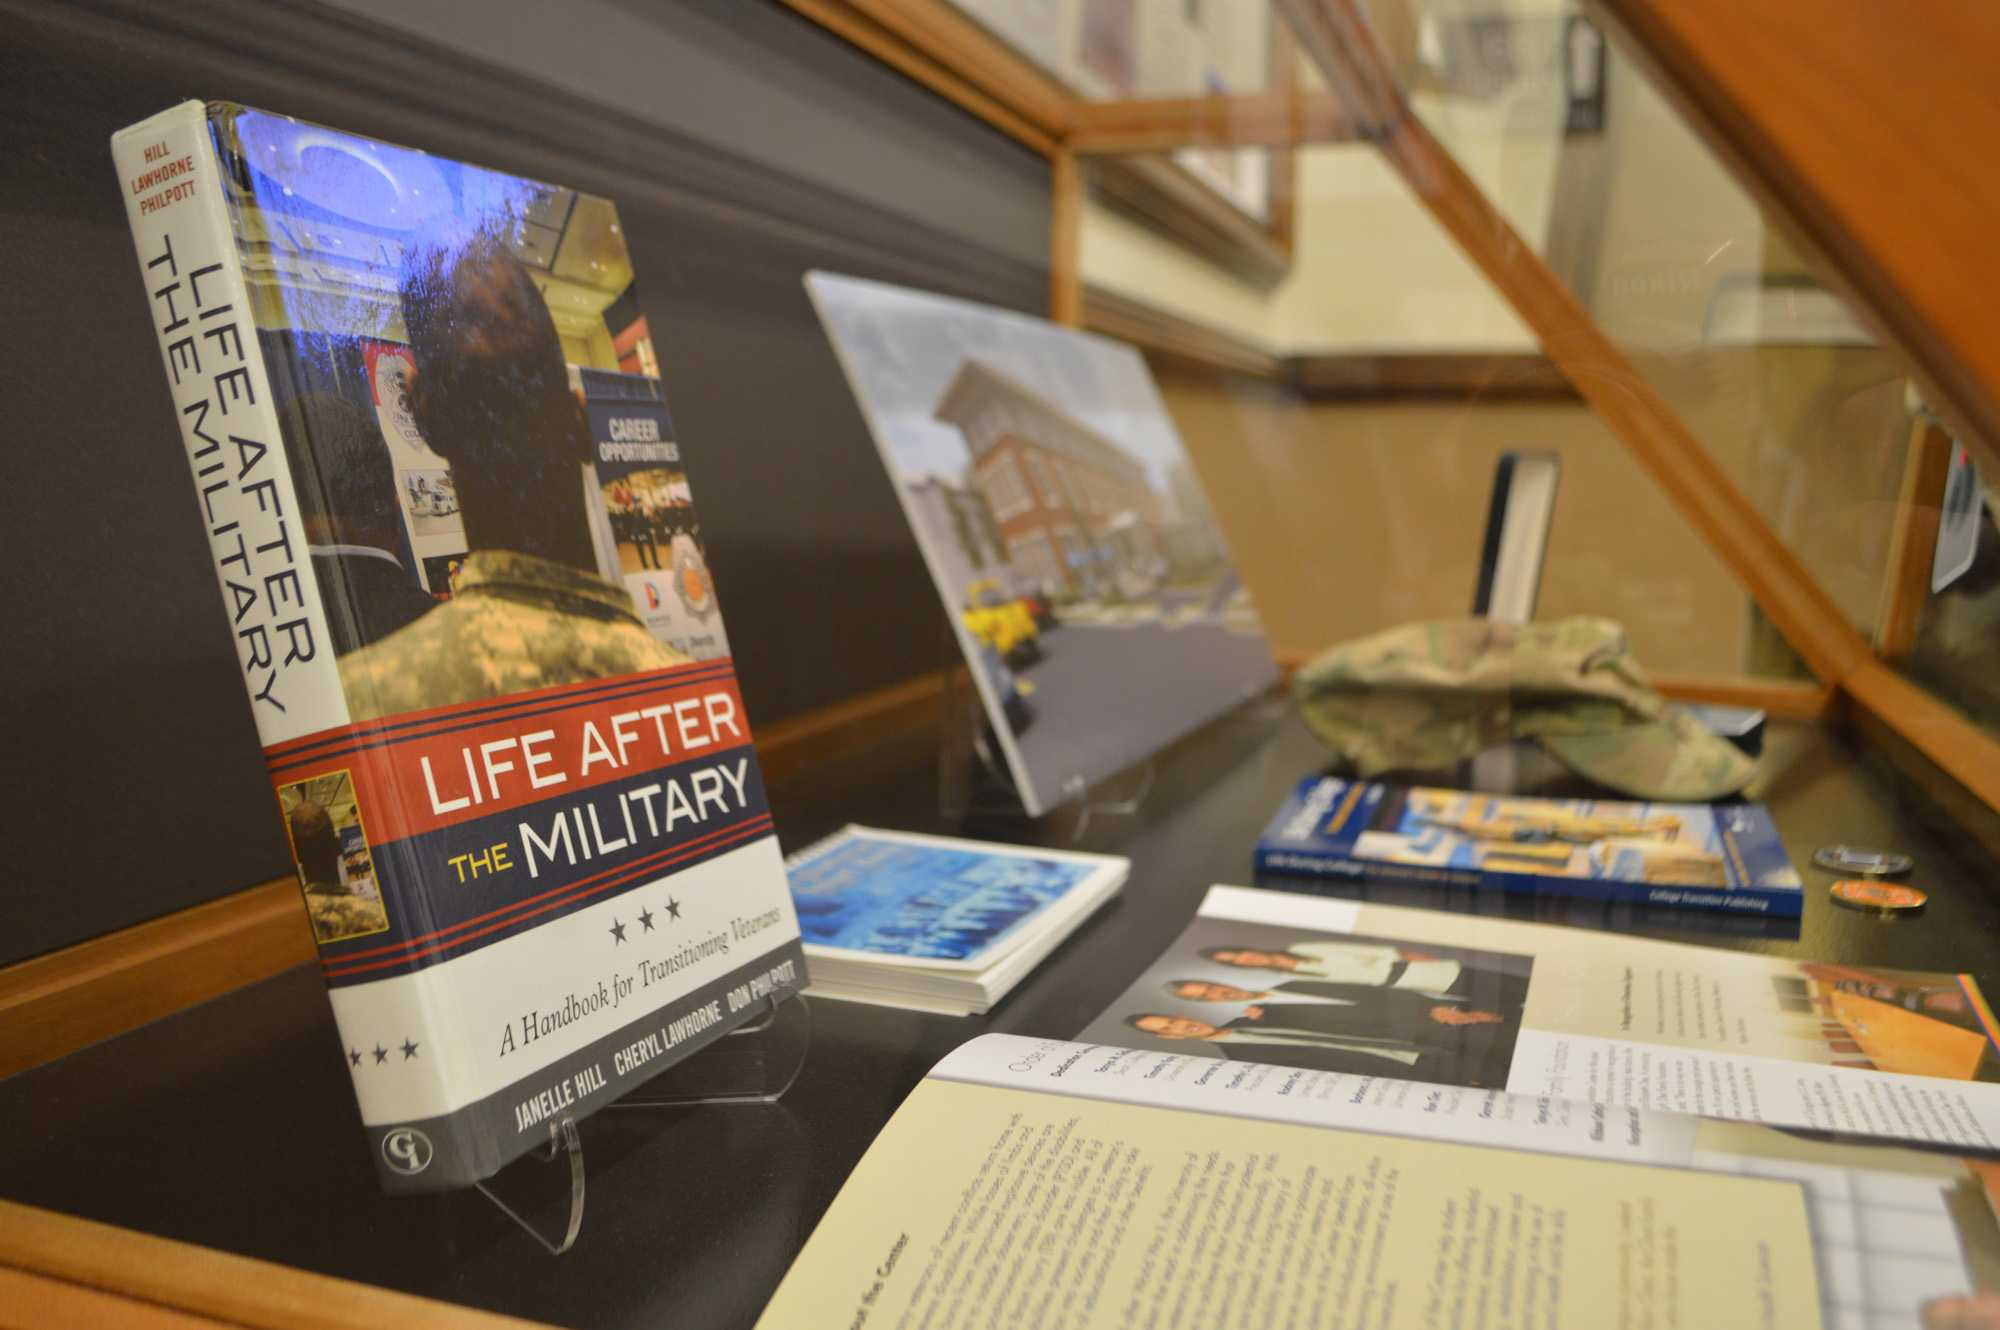 In honor of Veterans' Day, a display called